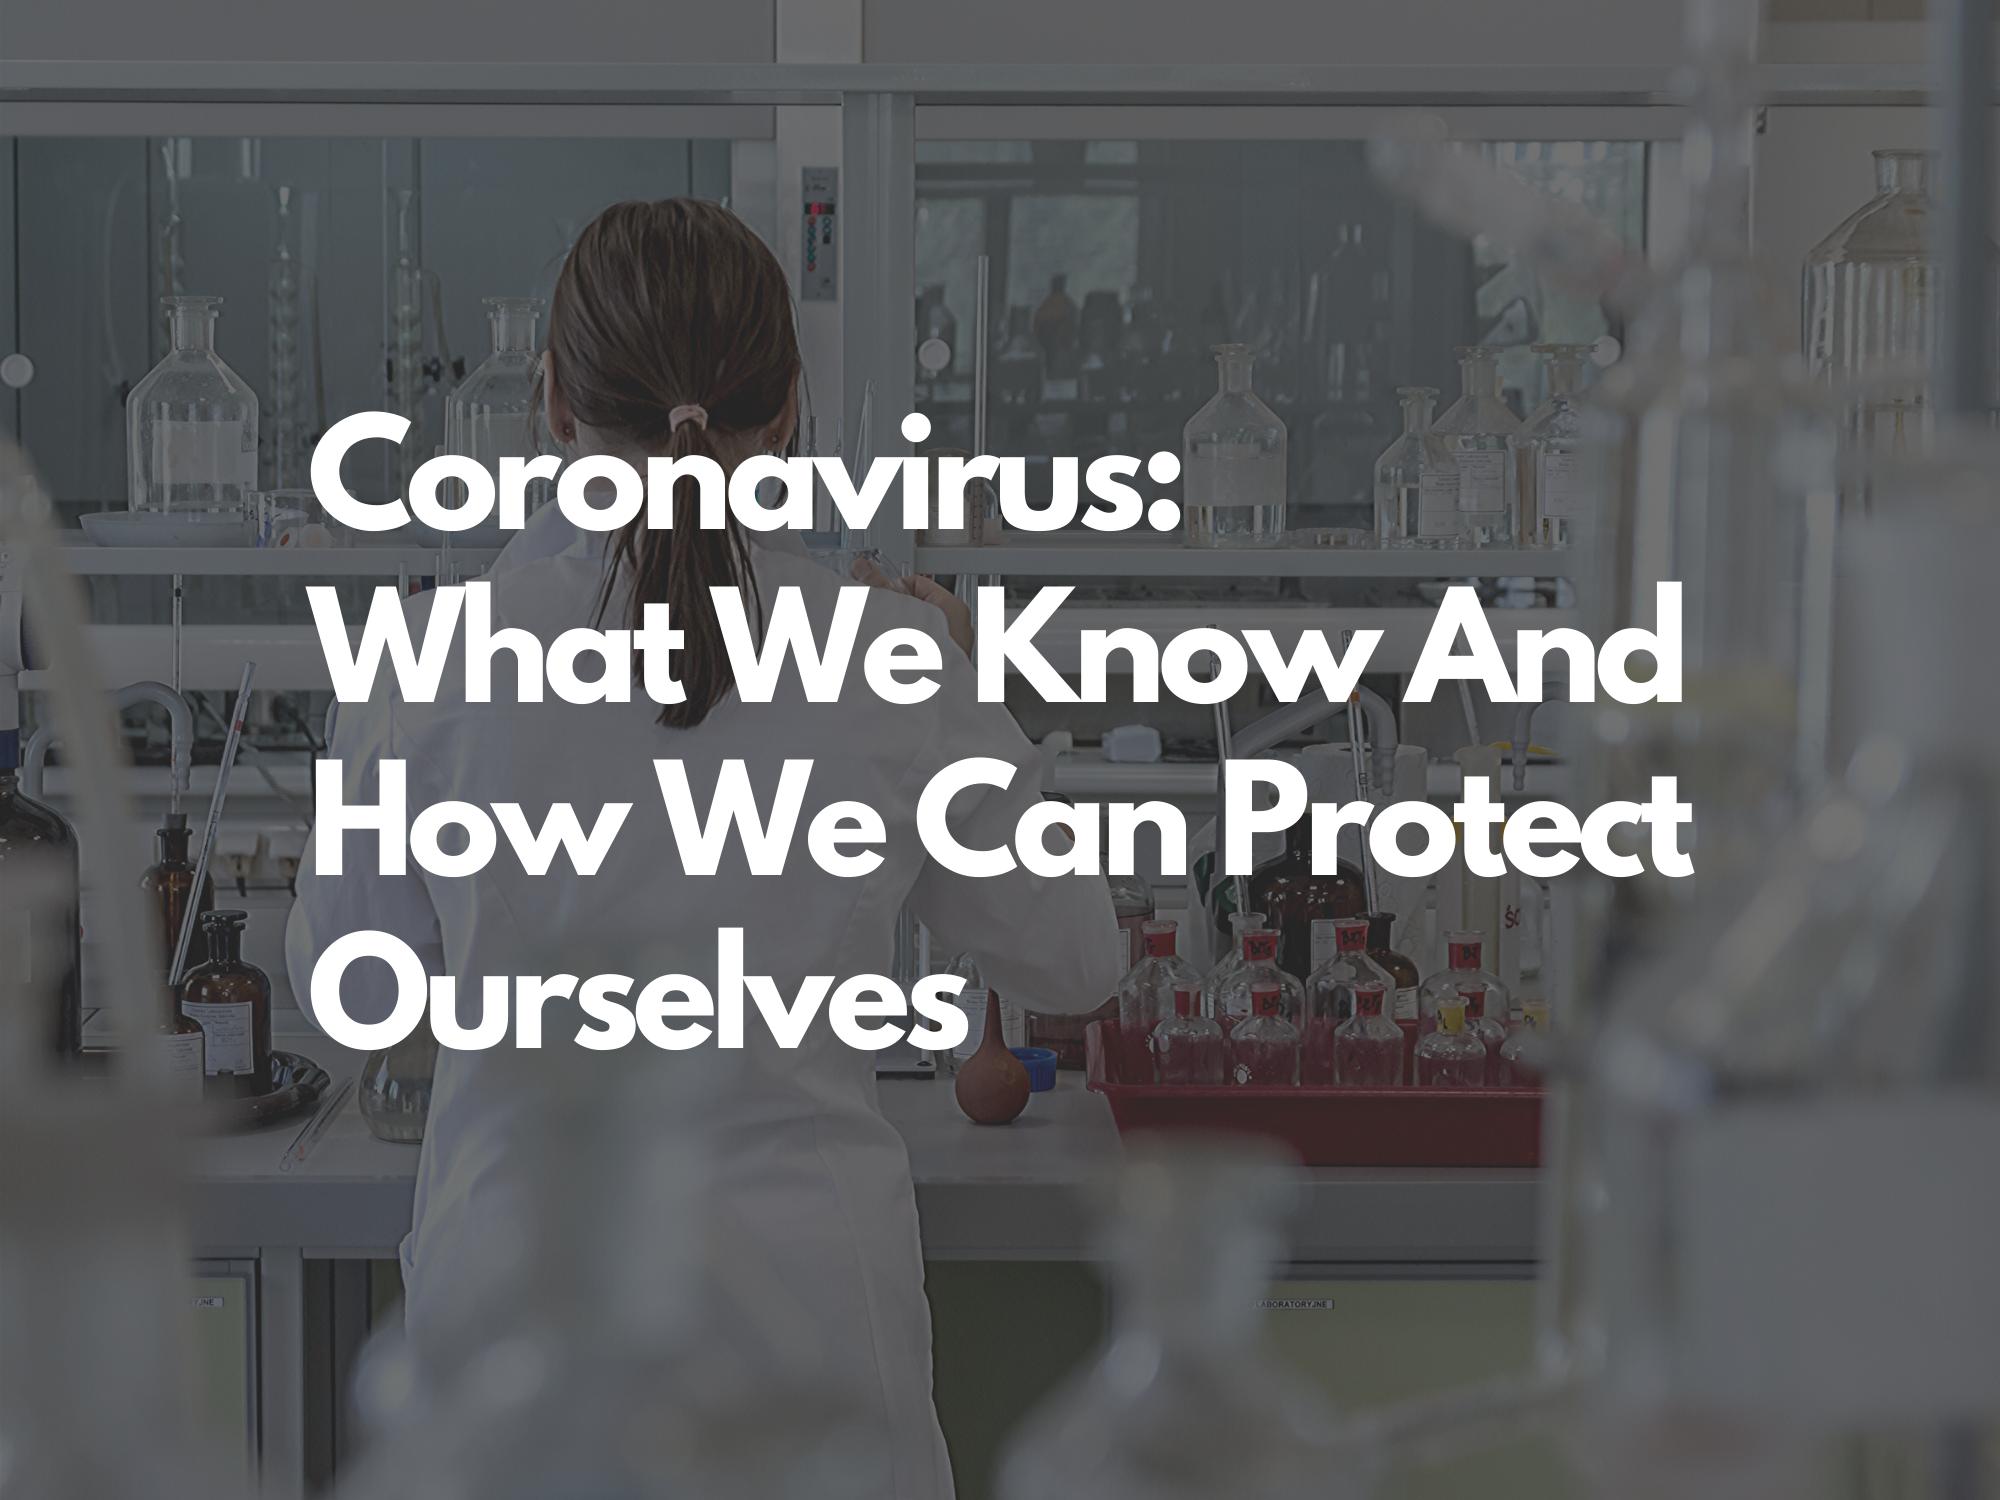 Coronavirus: What We Know And How We Can Protect Ourselves